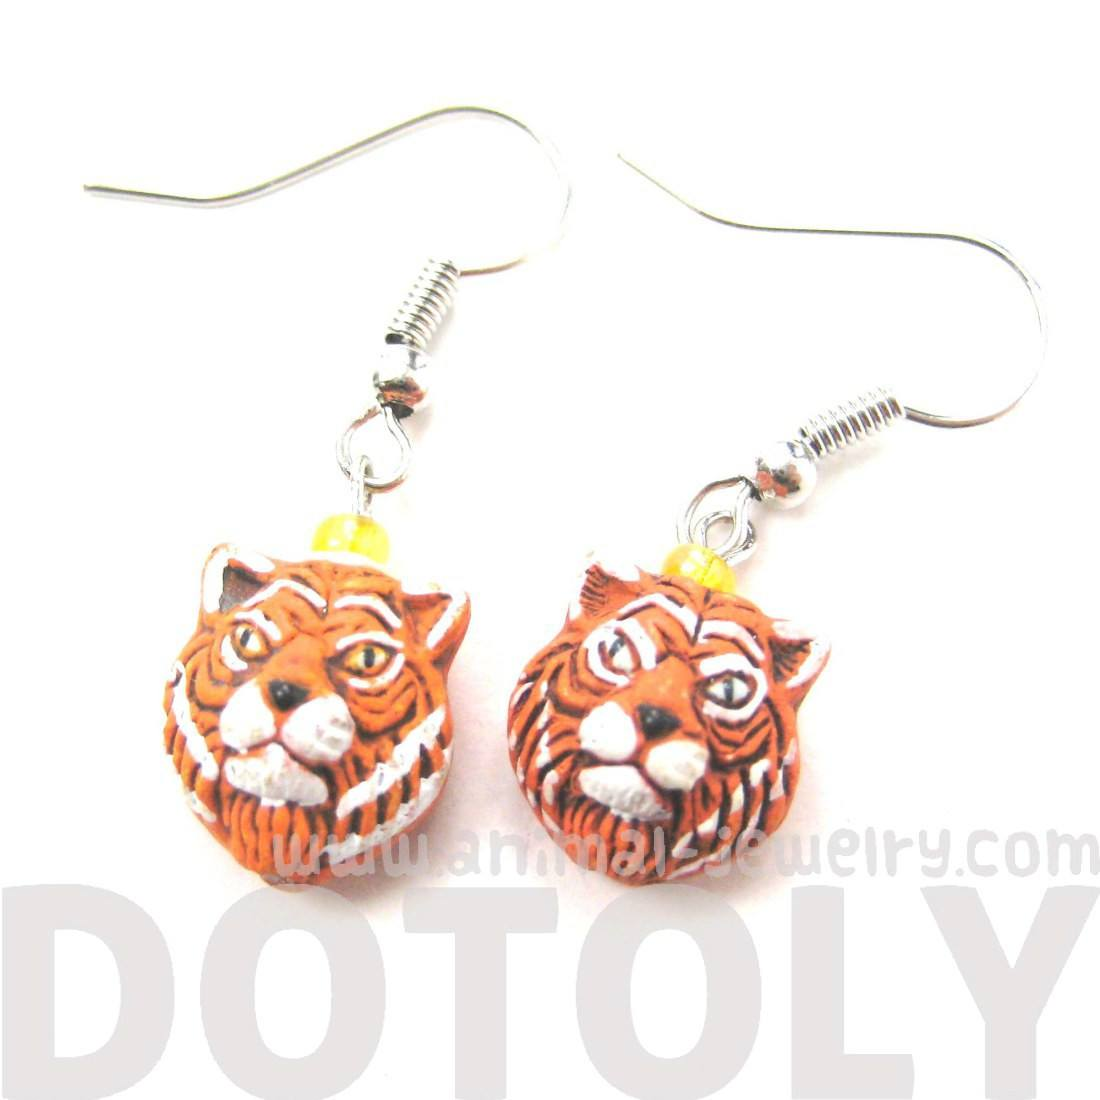 Realistic Lion Head Shaped Porcelain Ceramic Animal Dangle Earrings